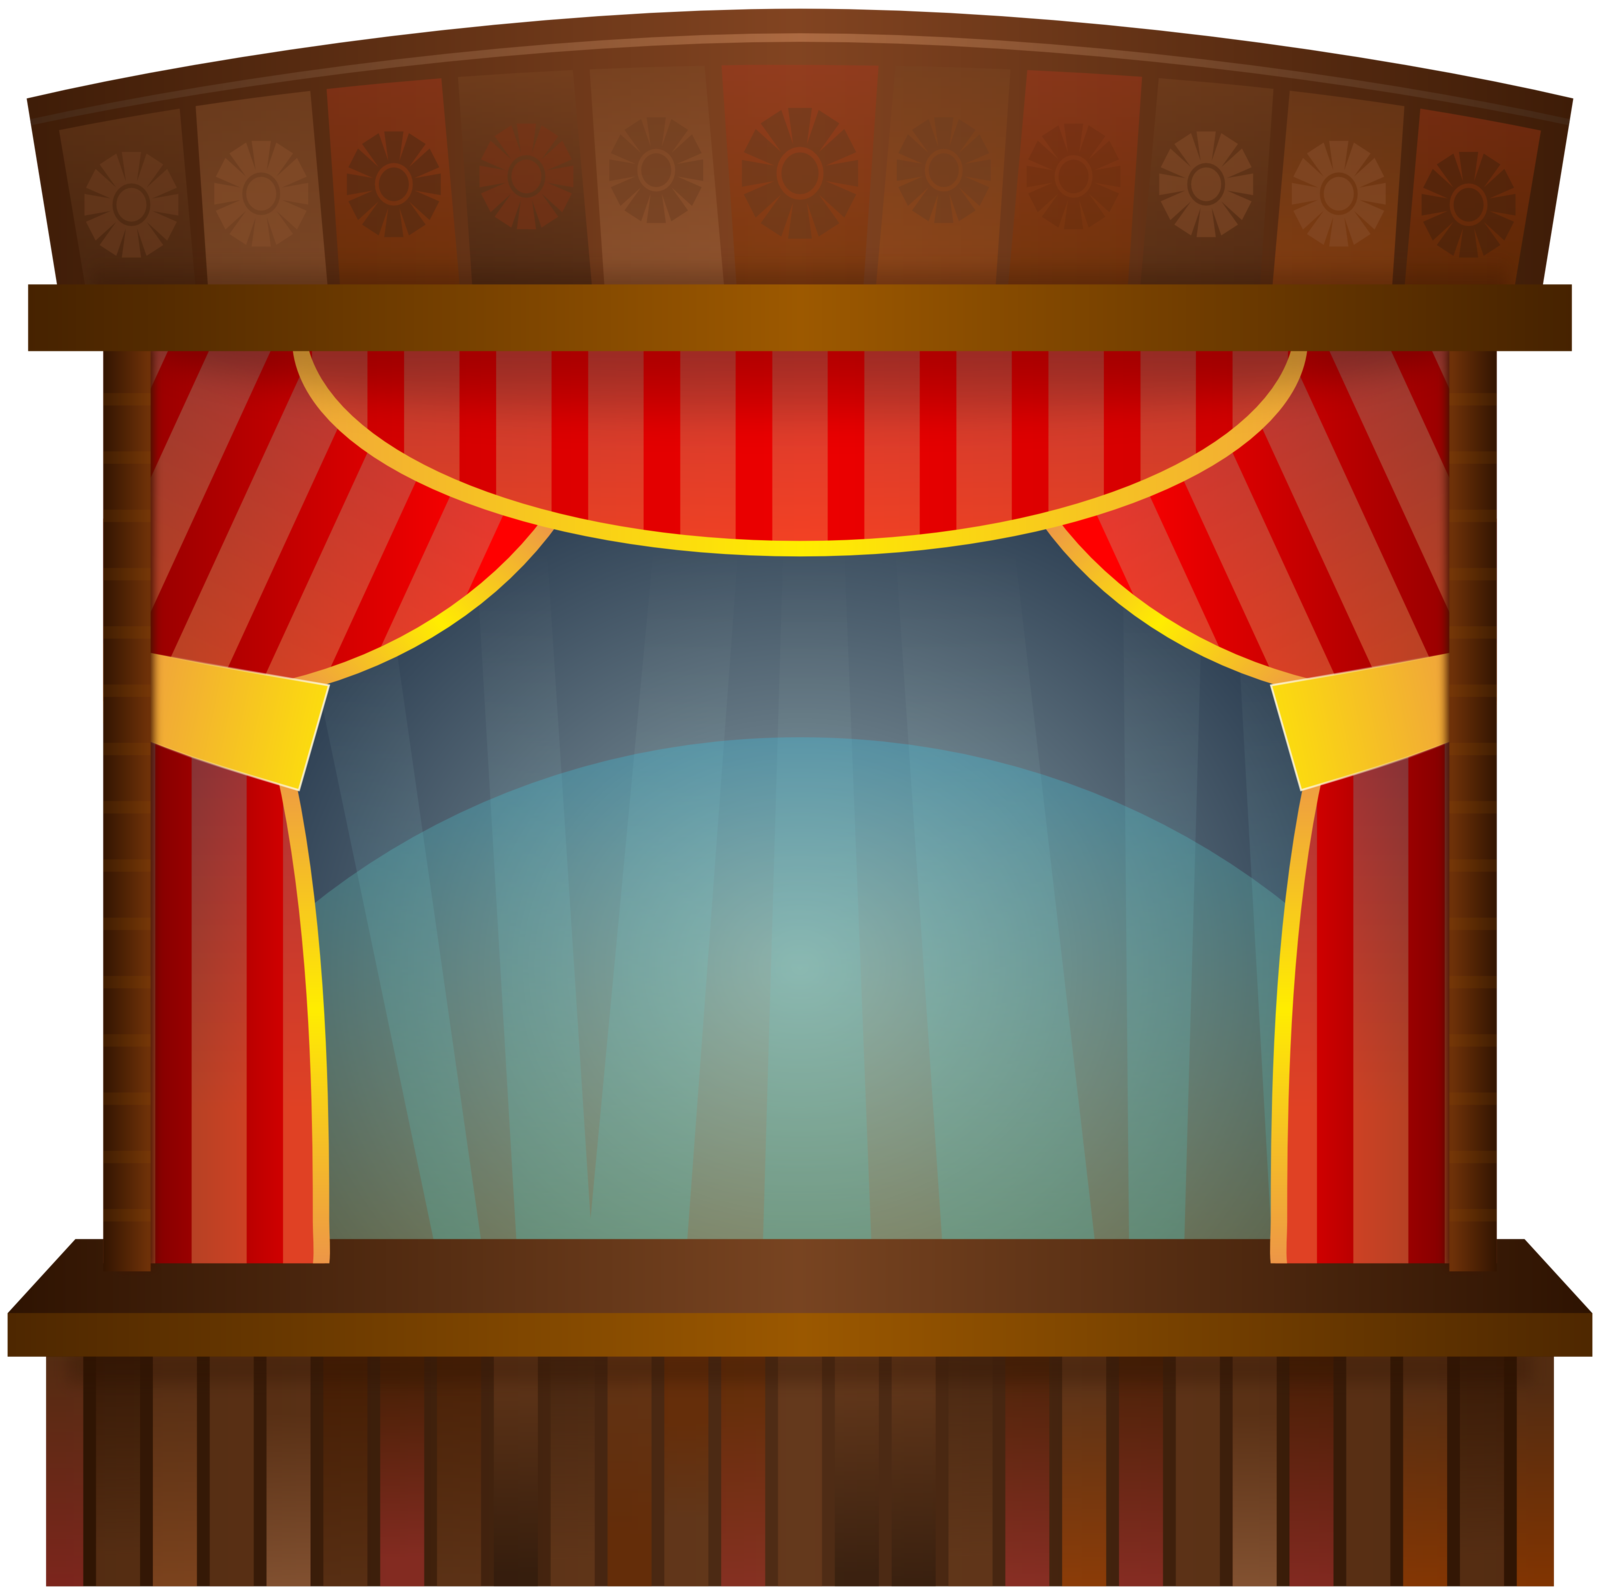 School auditorium clipart graphic black and white Stage Clip Art Images | Clipart Panda - Free Clipart Images graphic black and white